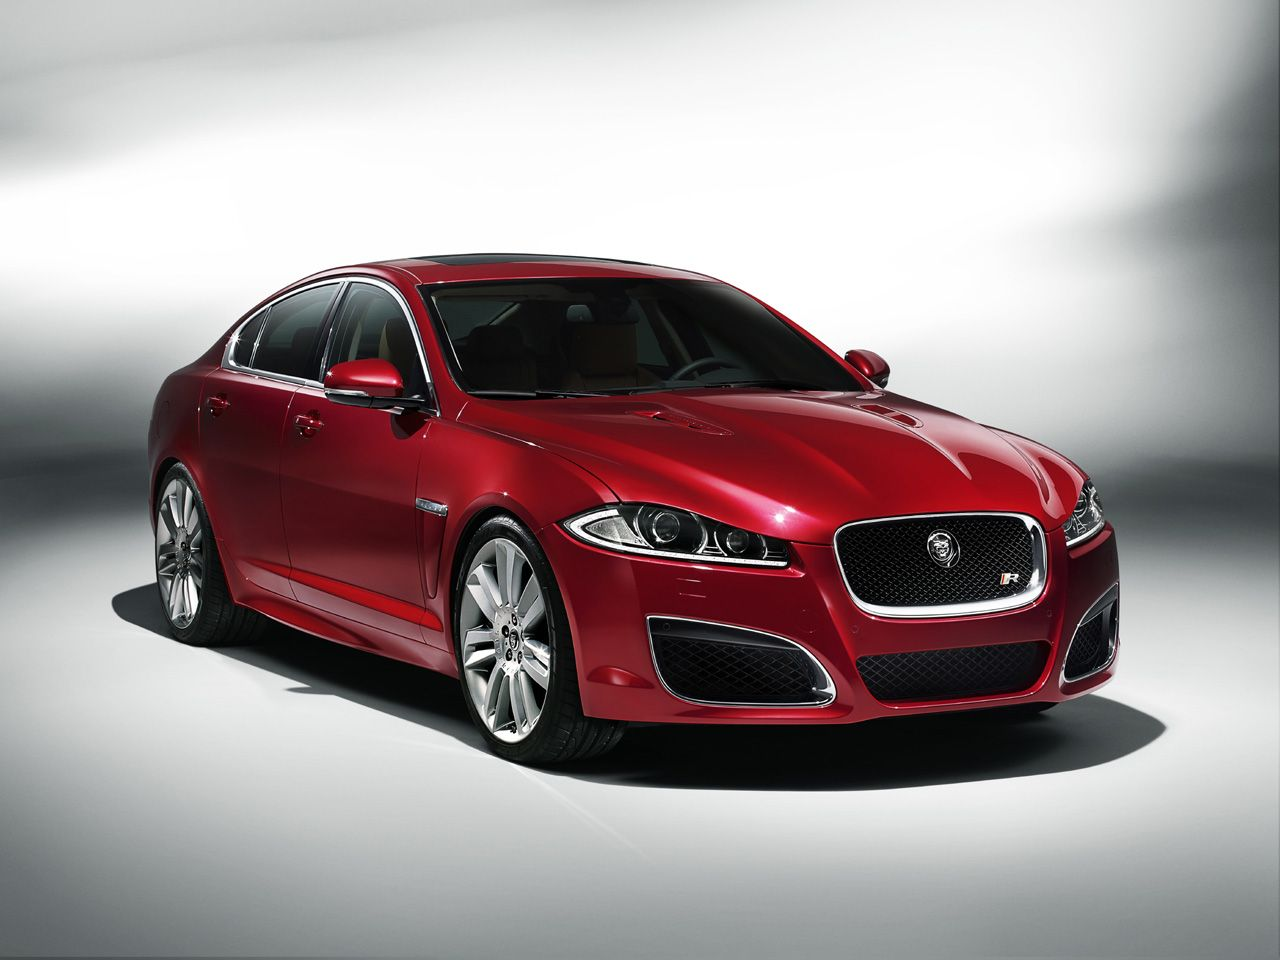 Jaguar Cars Jaguar Xf 2012 Give It To Me Please Jaguar Car